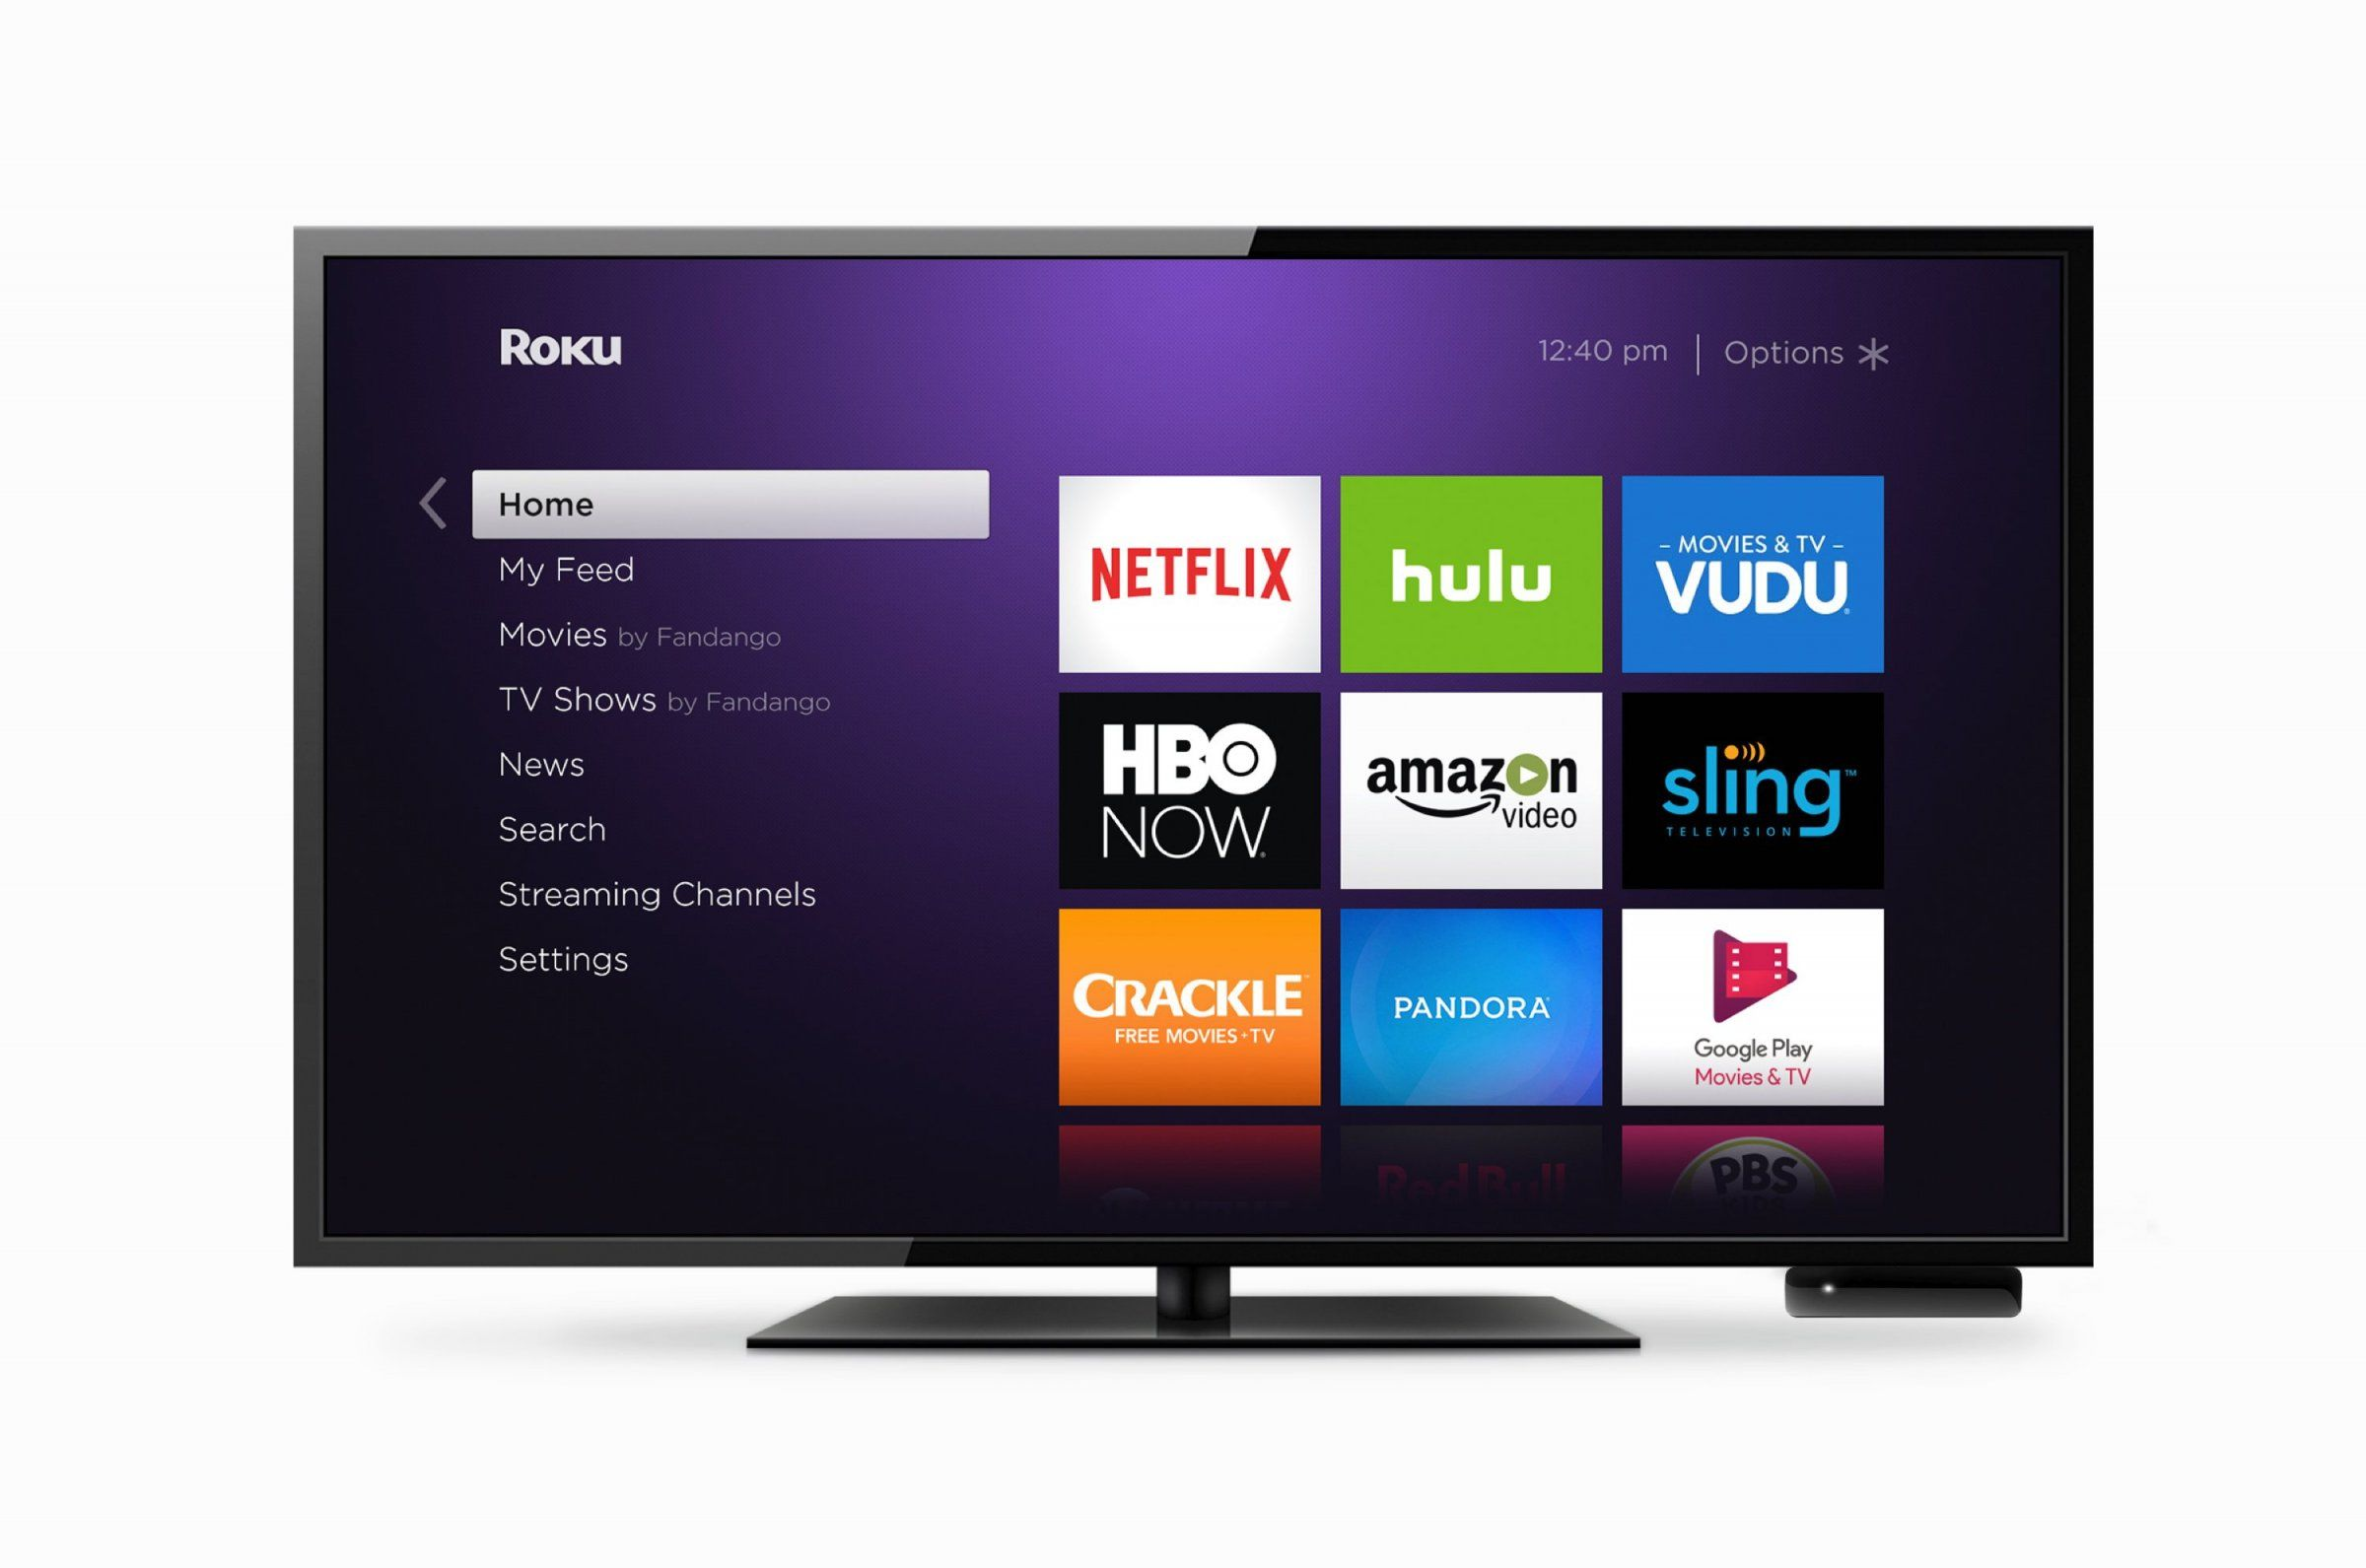 How to restart your Roku device when it's freezing or